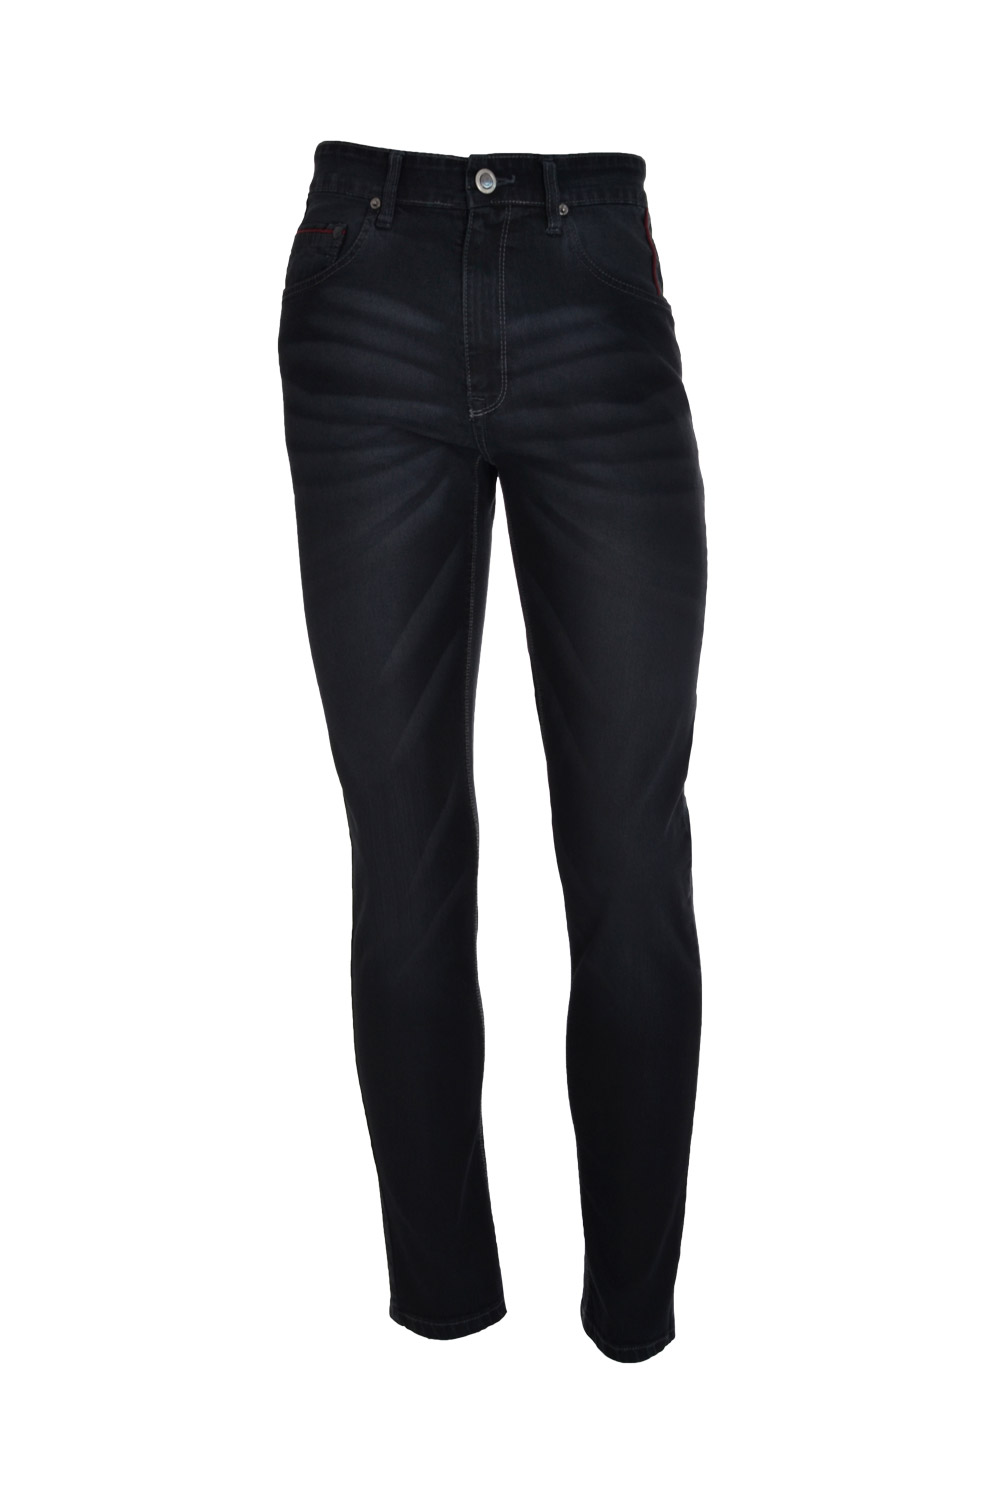 CALÇA JEANS BLUES SLIM POLIALGODAO & ELASTANO STRETCH STONED BLACK BLACK